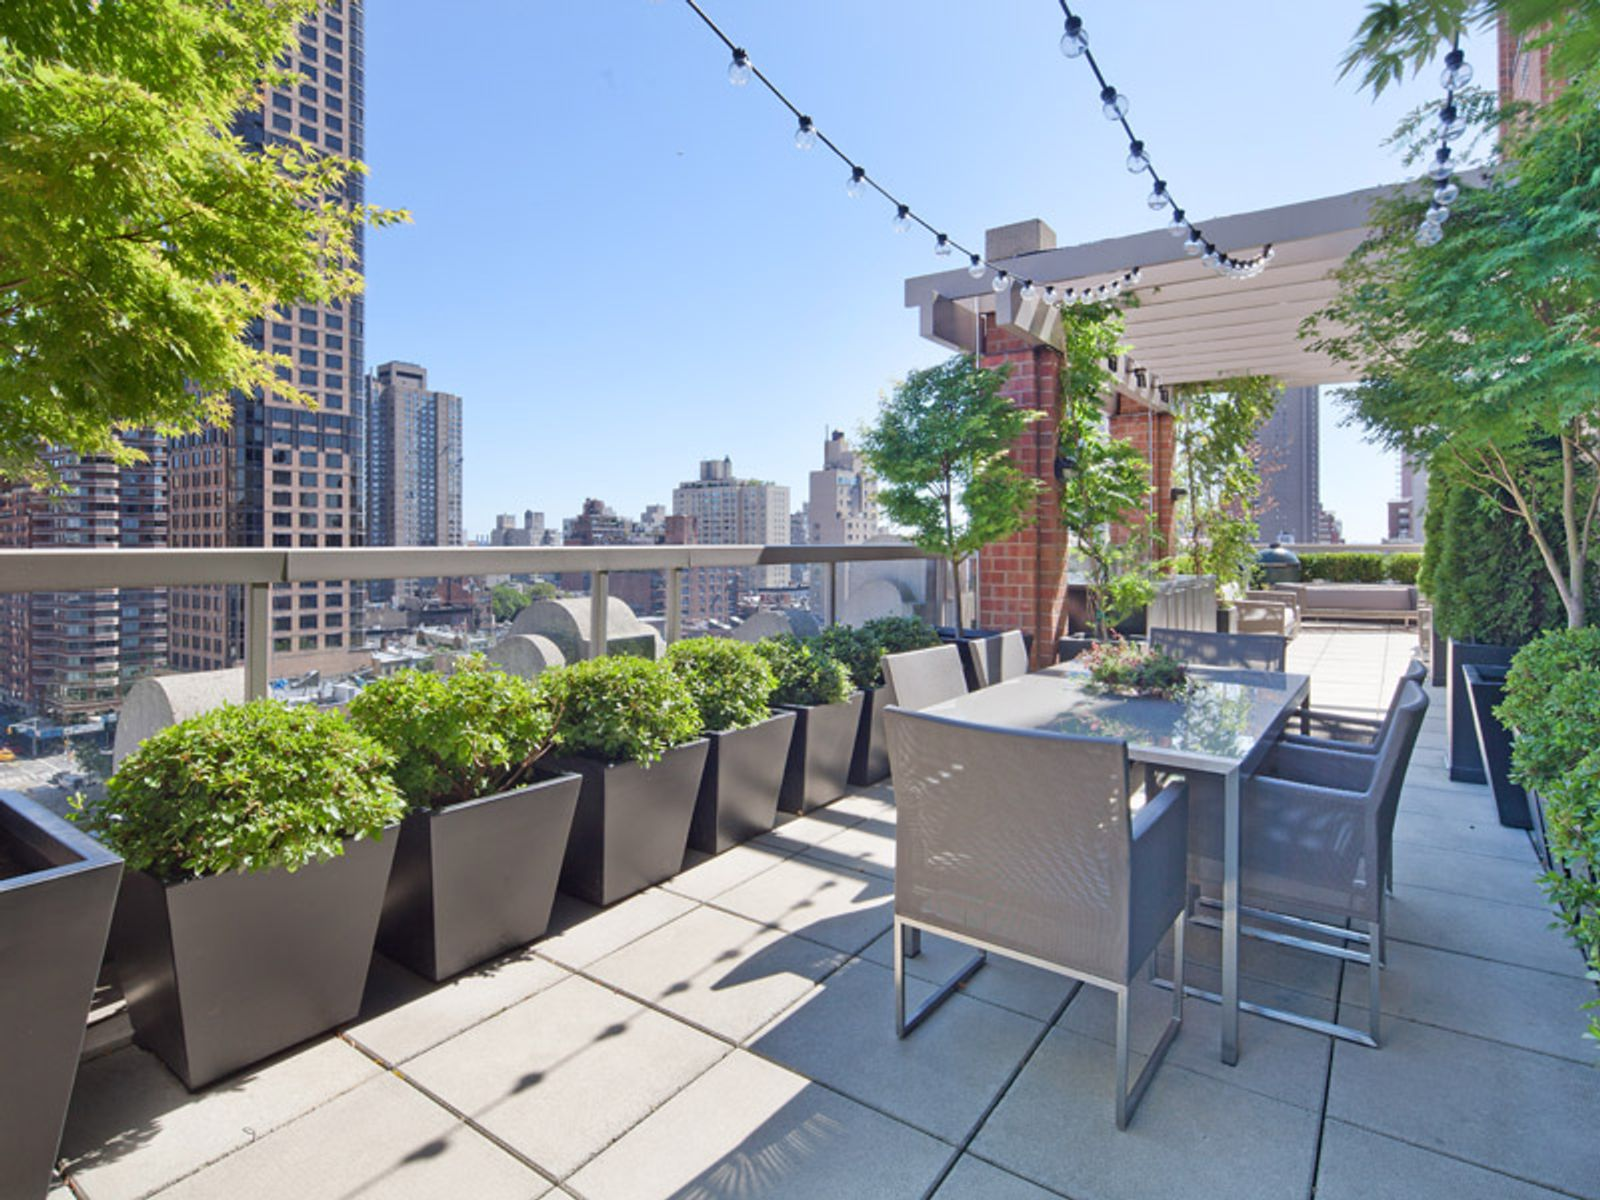 350 East 82nd Street, New York NY Condominium - New York City Real Estate